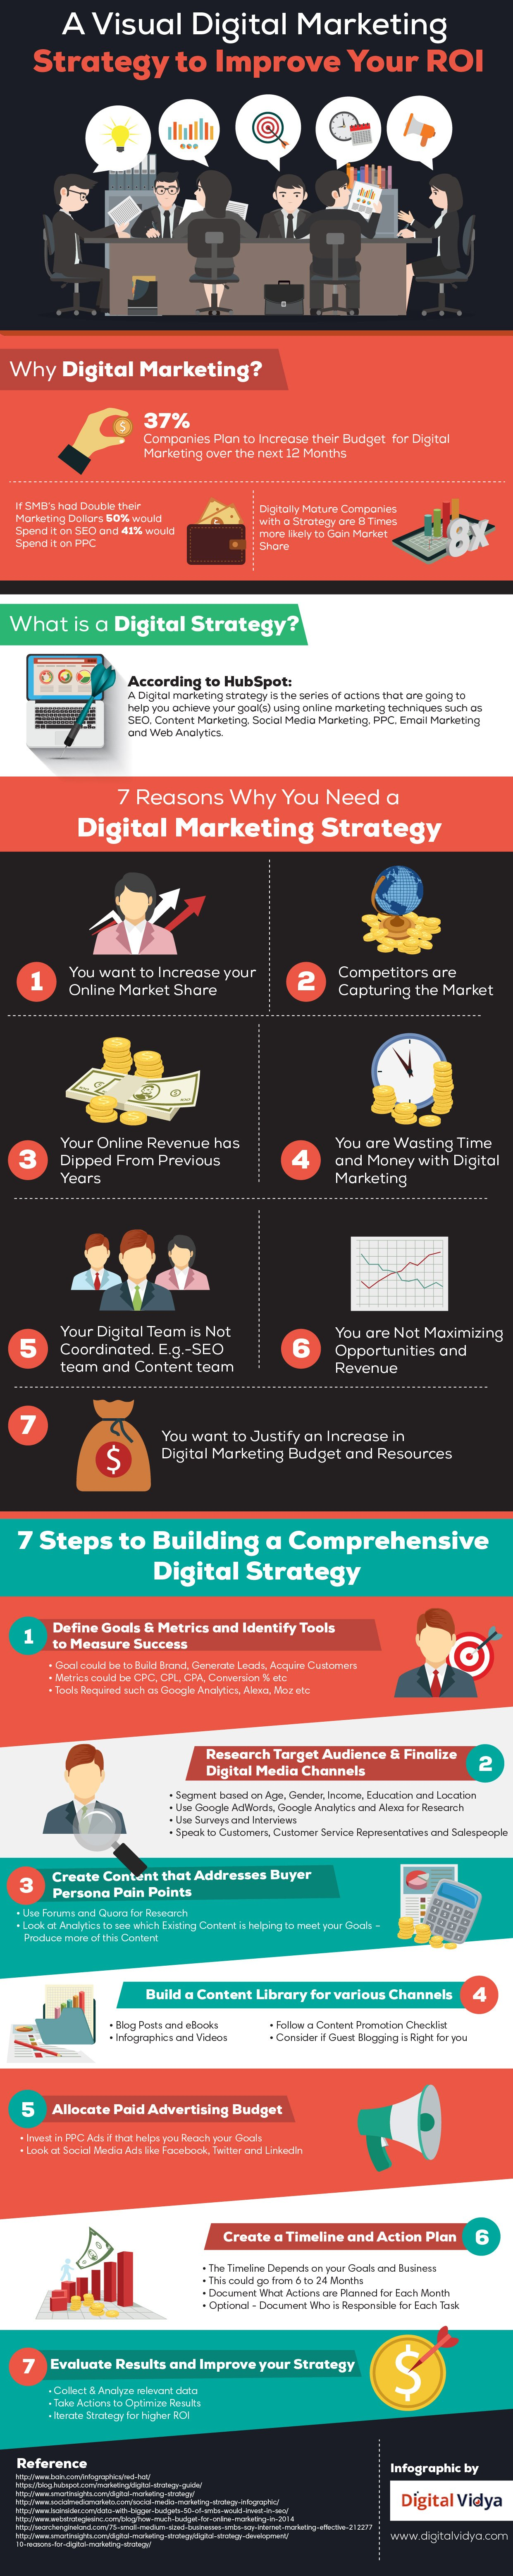 A Visual Digital Marketing Strategy To Improve Your ROI [Infographic] | Social Media Today